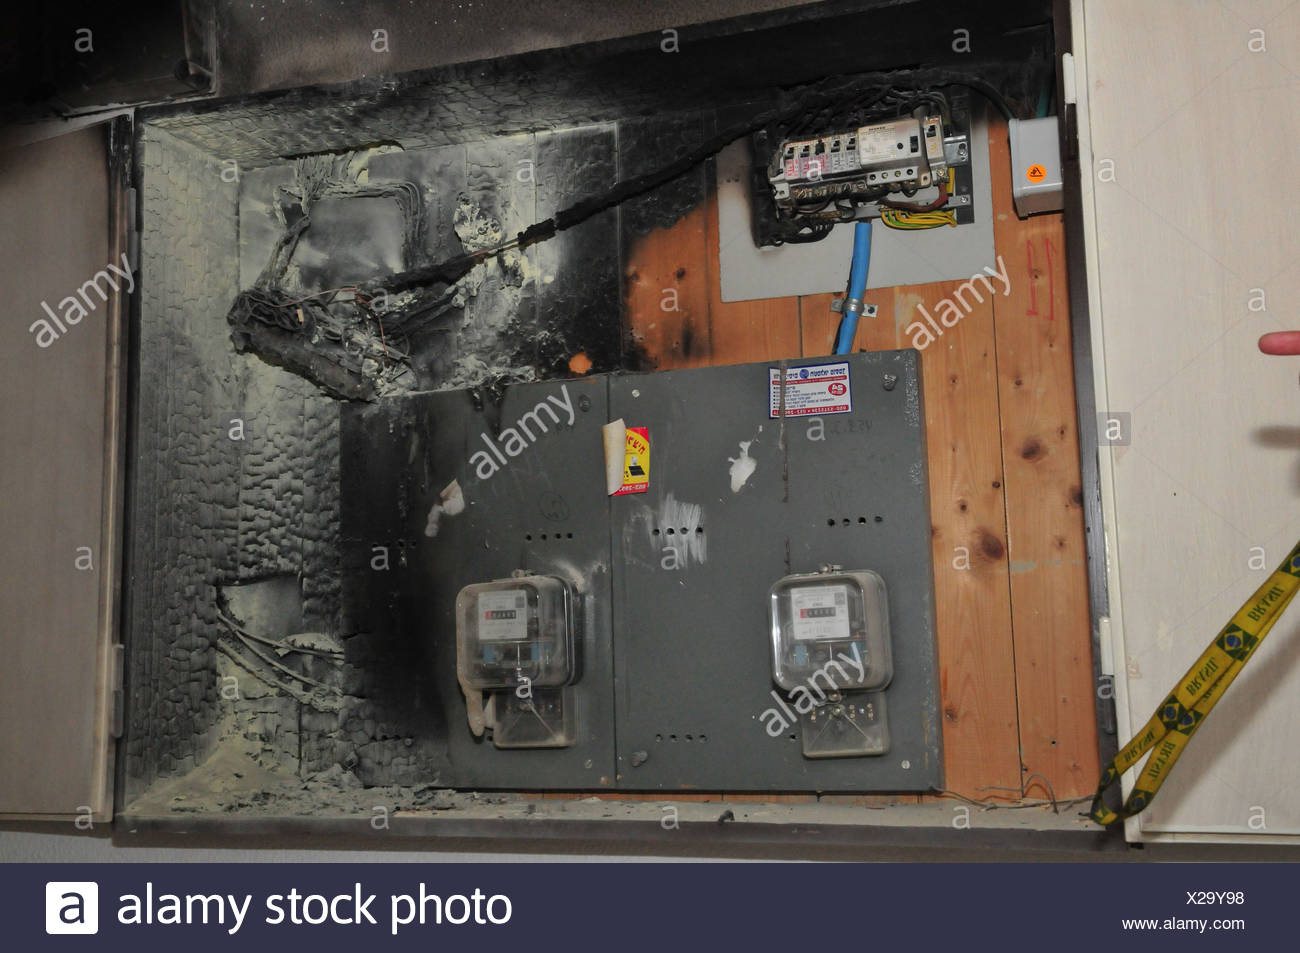 Cartoon Electrical Fuse Box Fire Extinguisher Stock Photos A Broke Out In Household Flames Consumed The Board